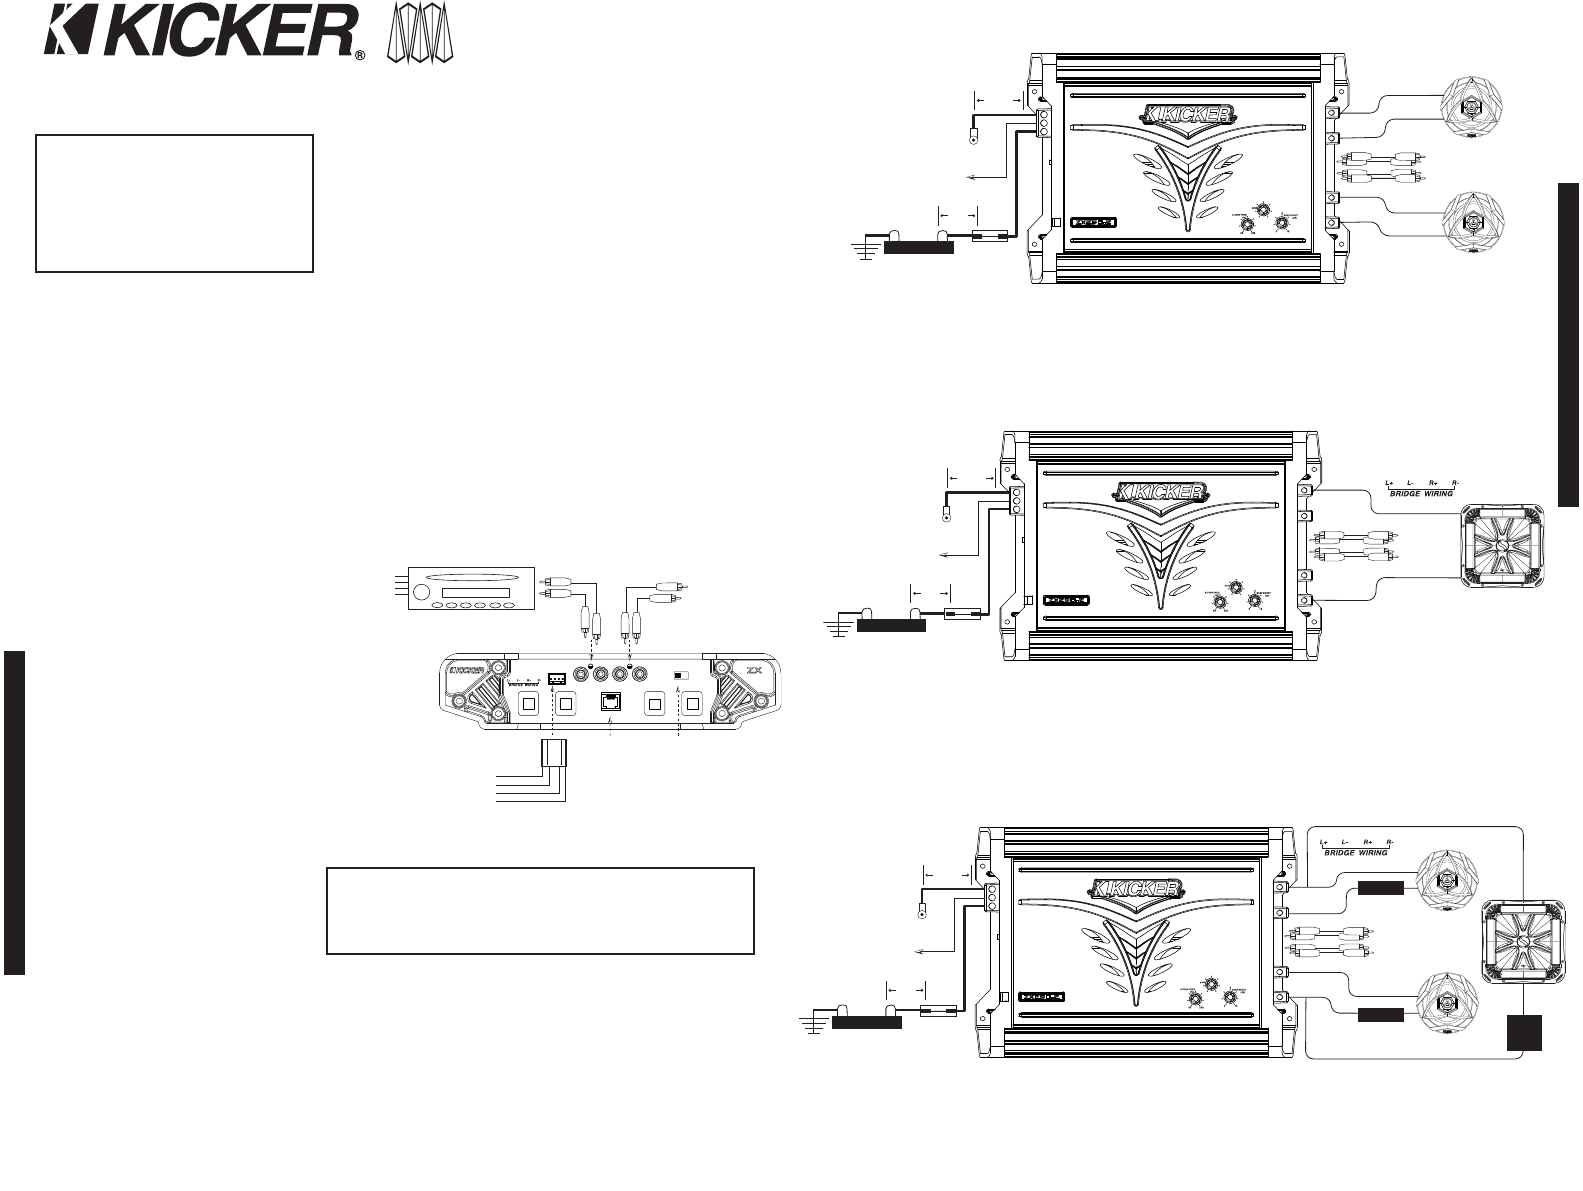 a81eae5c fe97 44a6 8b91 25020d55c55a bg2 page 2 of kicker stereo amplifier zx850 2 user guide Kicker Flat Subwoofers at nearapp.co